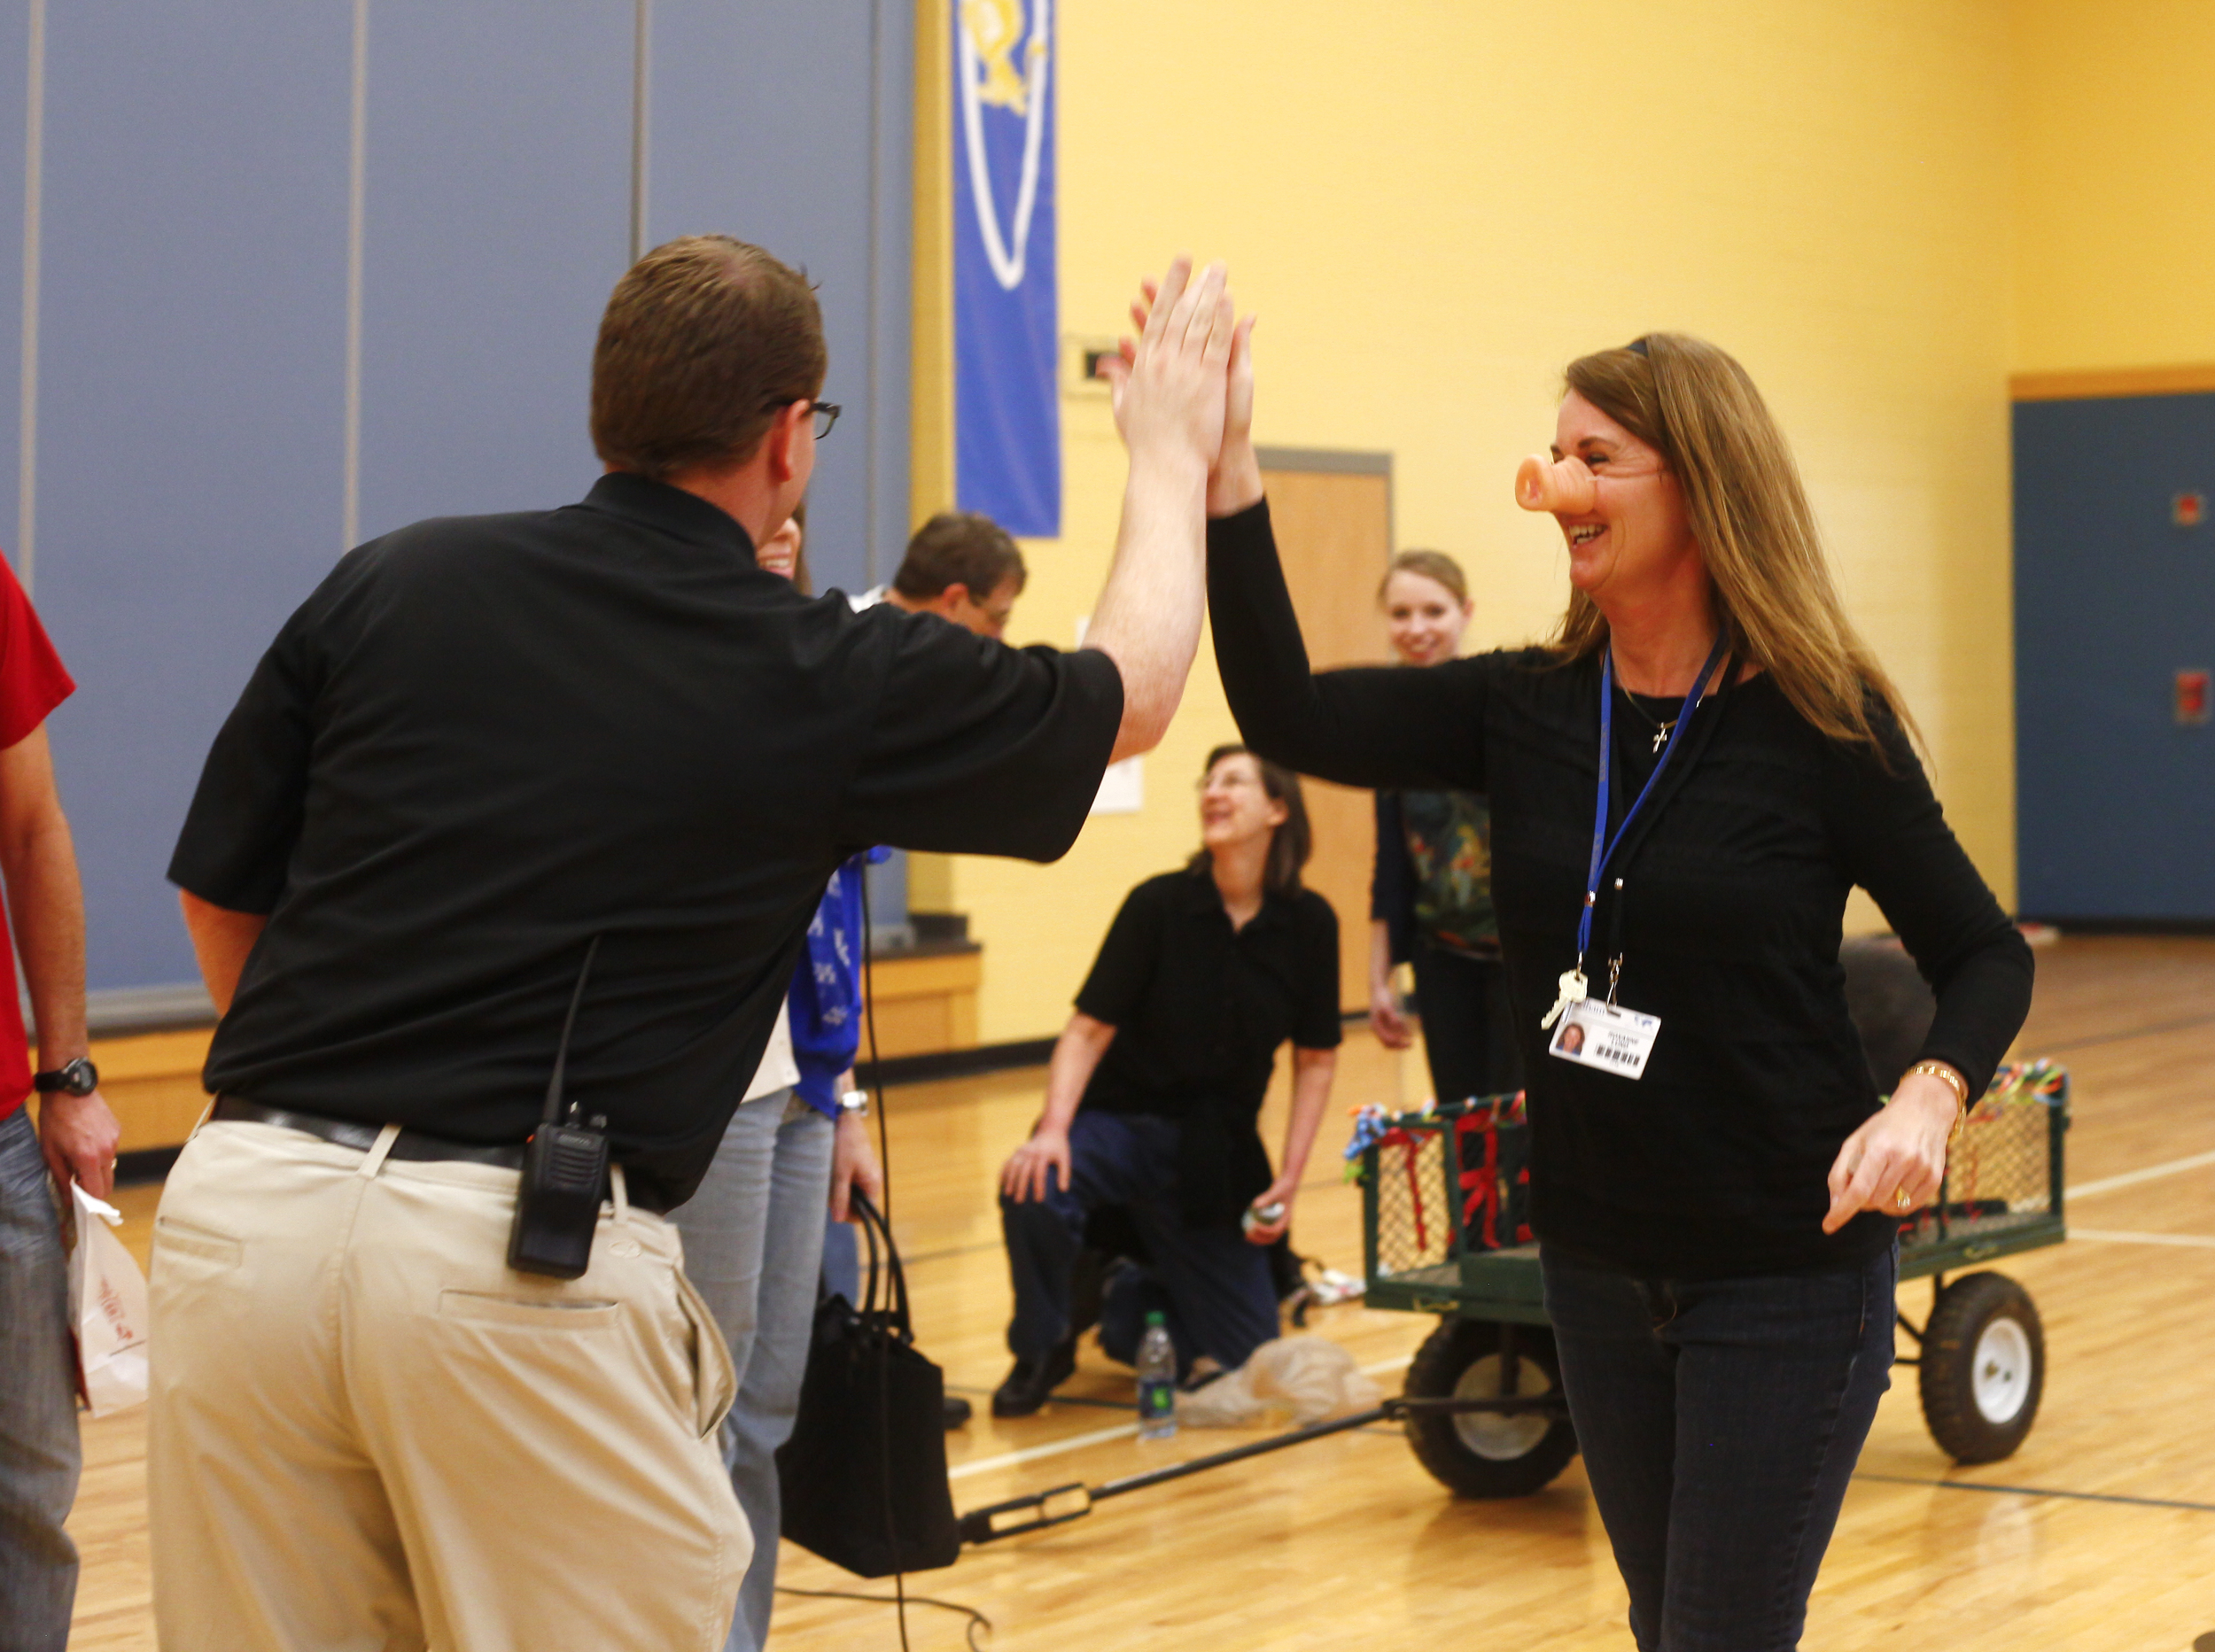 Third grade teacher Roxanne Lund high fives Principal Andy Moore after being called down to kiss Herbert the pig.